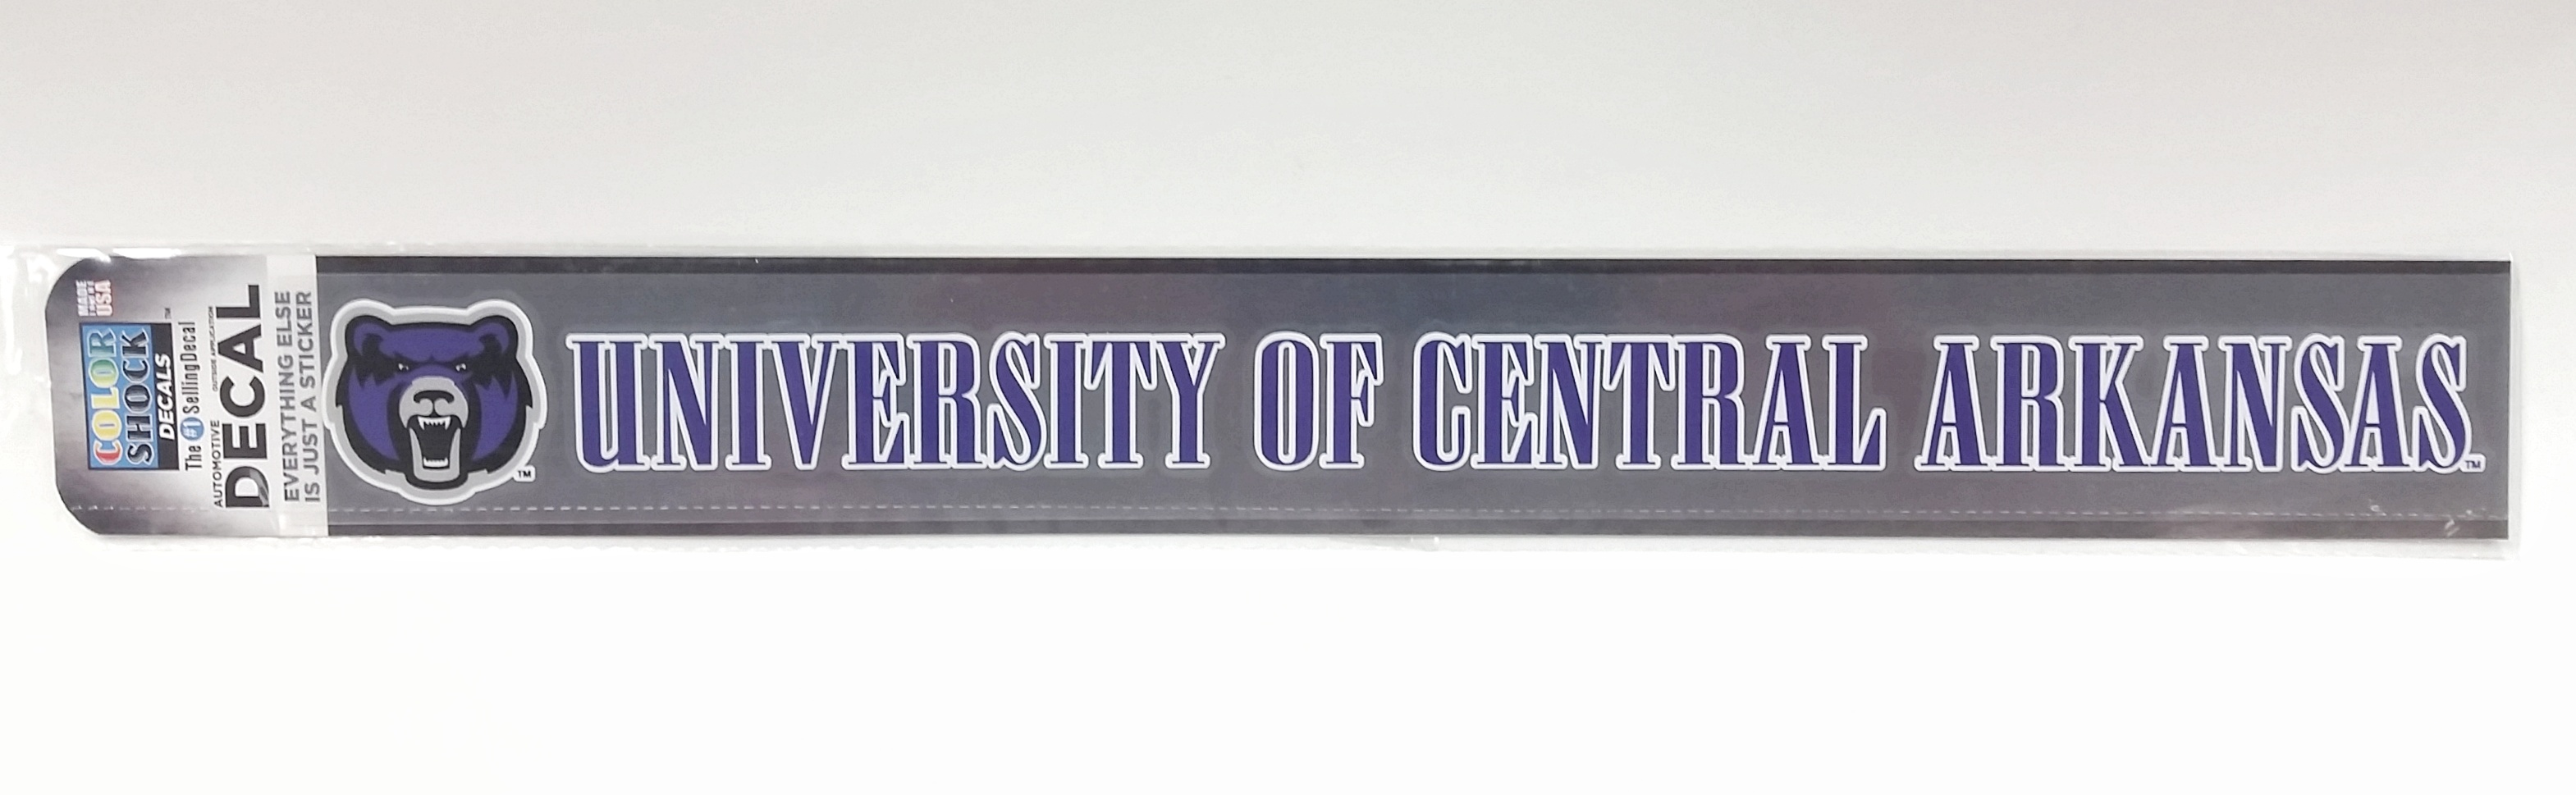 University of Central Arkansas Decal